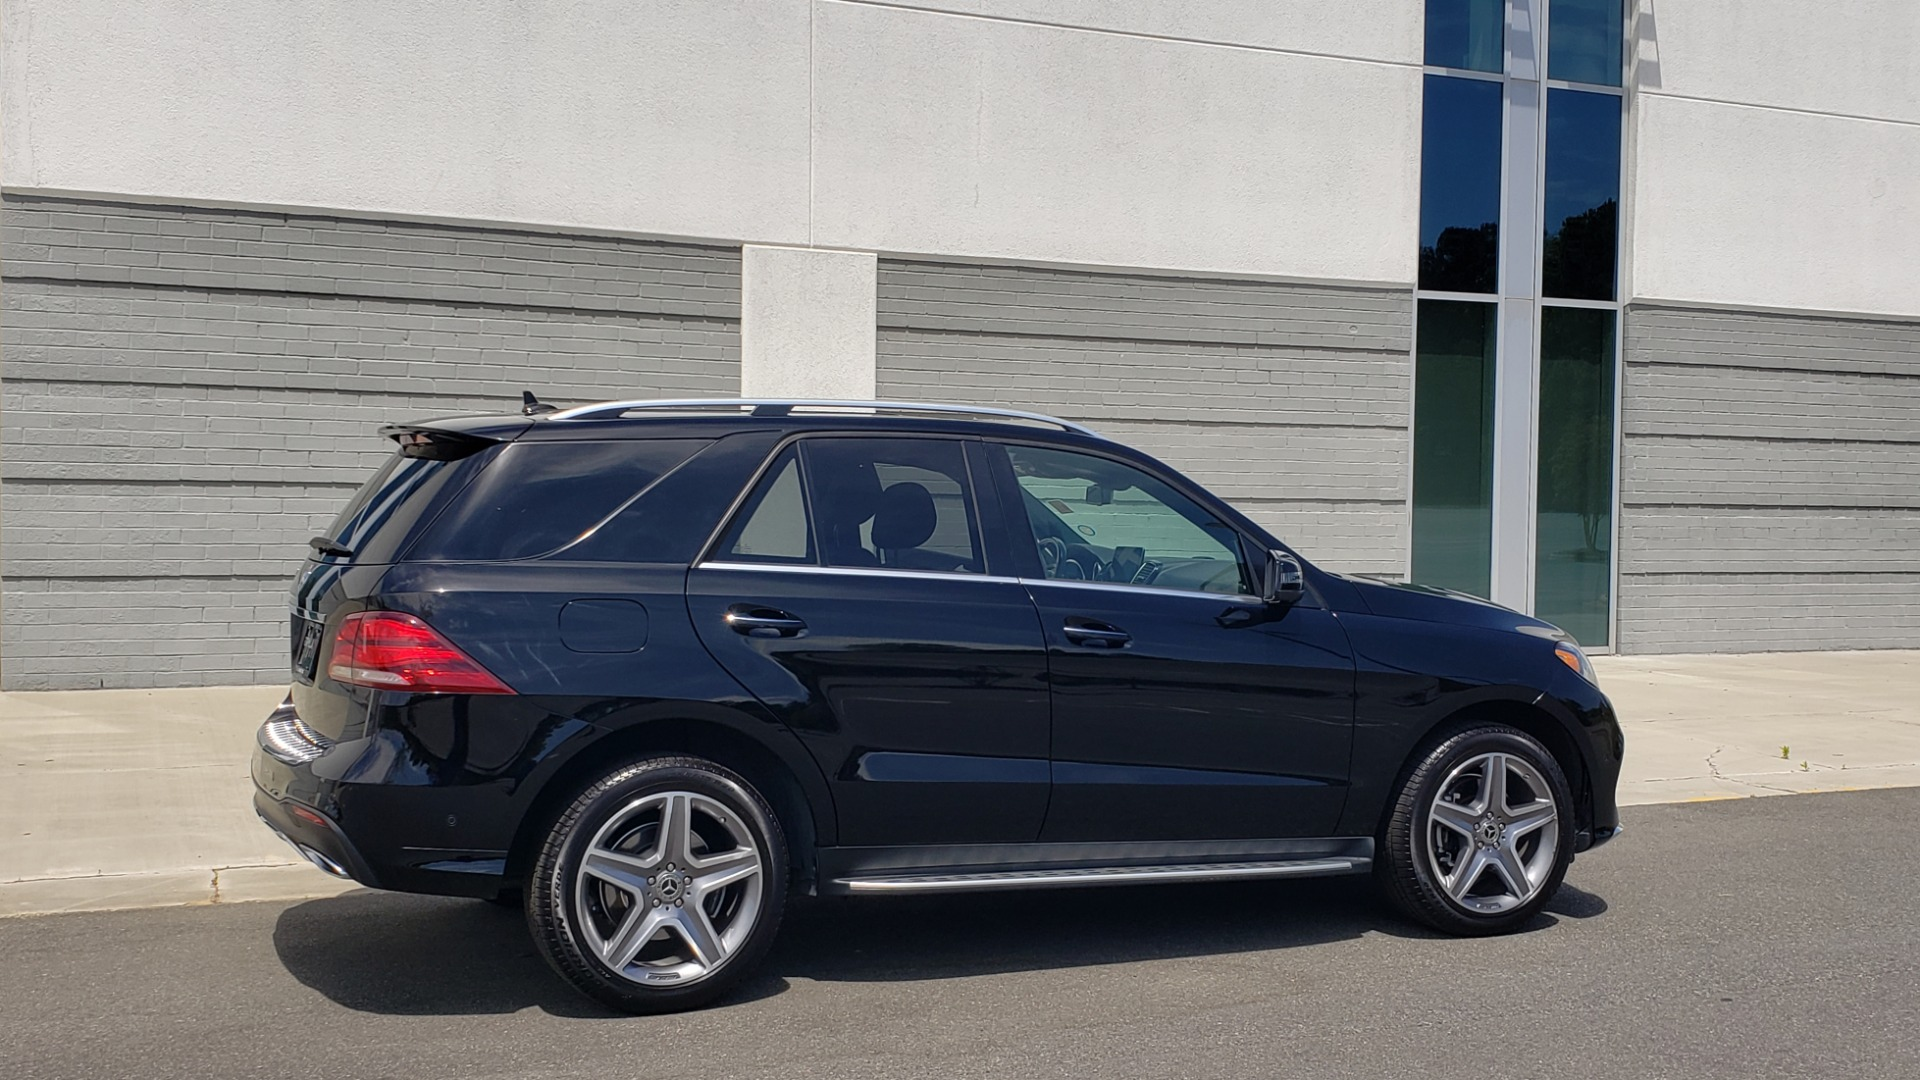 Used 2018 Mercedes-Benz GLE 350 PREMIUM / NAV / H/K SOUND / SUNROOF / REARVIEW for sale Sold at Formula Imports in Charlotte NC 28227 7